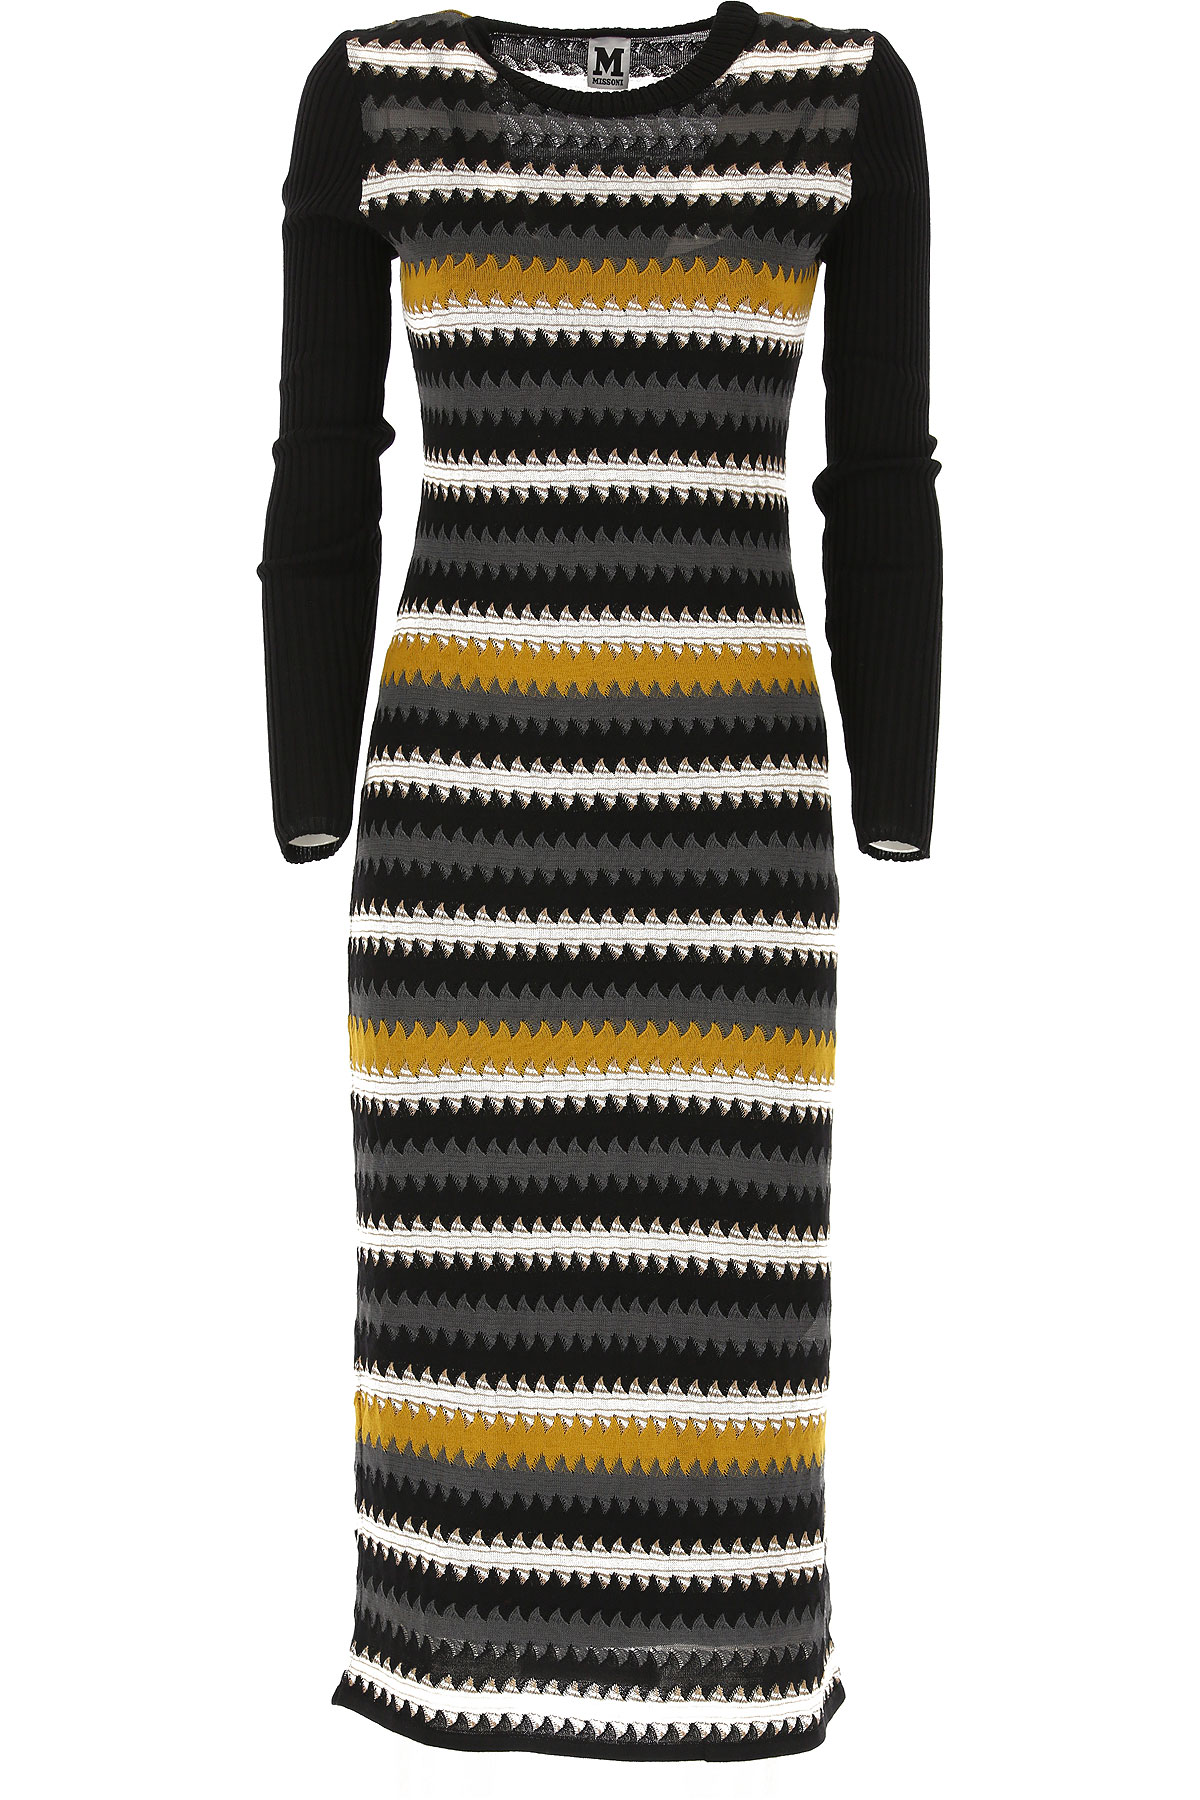 Missoni Dress for Women, Evening Cocktail Party On Sale, Black, Wool, 2019, 4 6 8